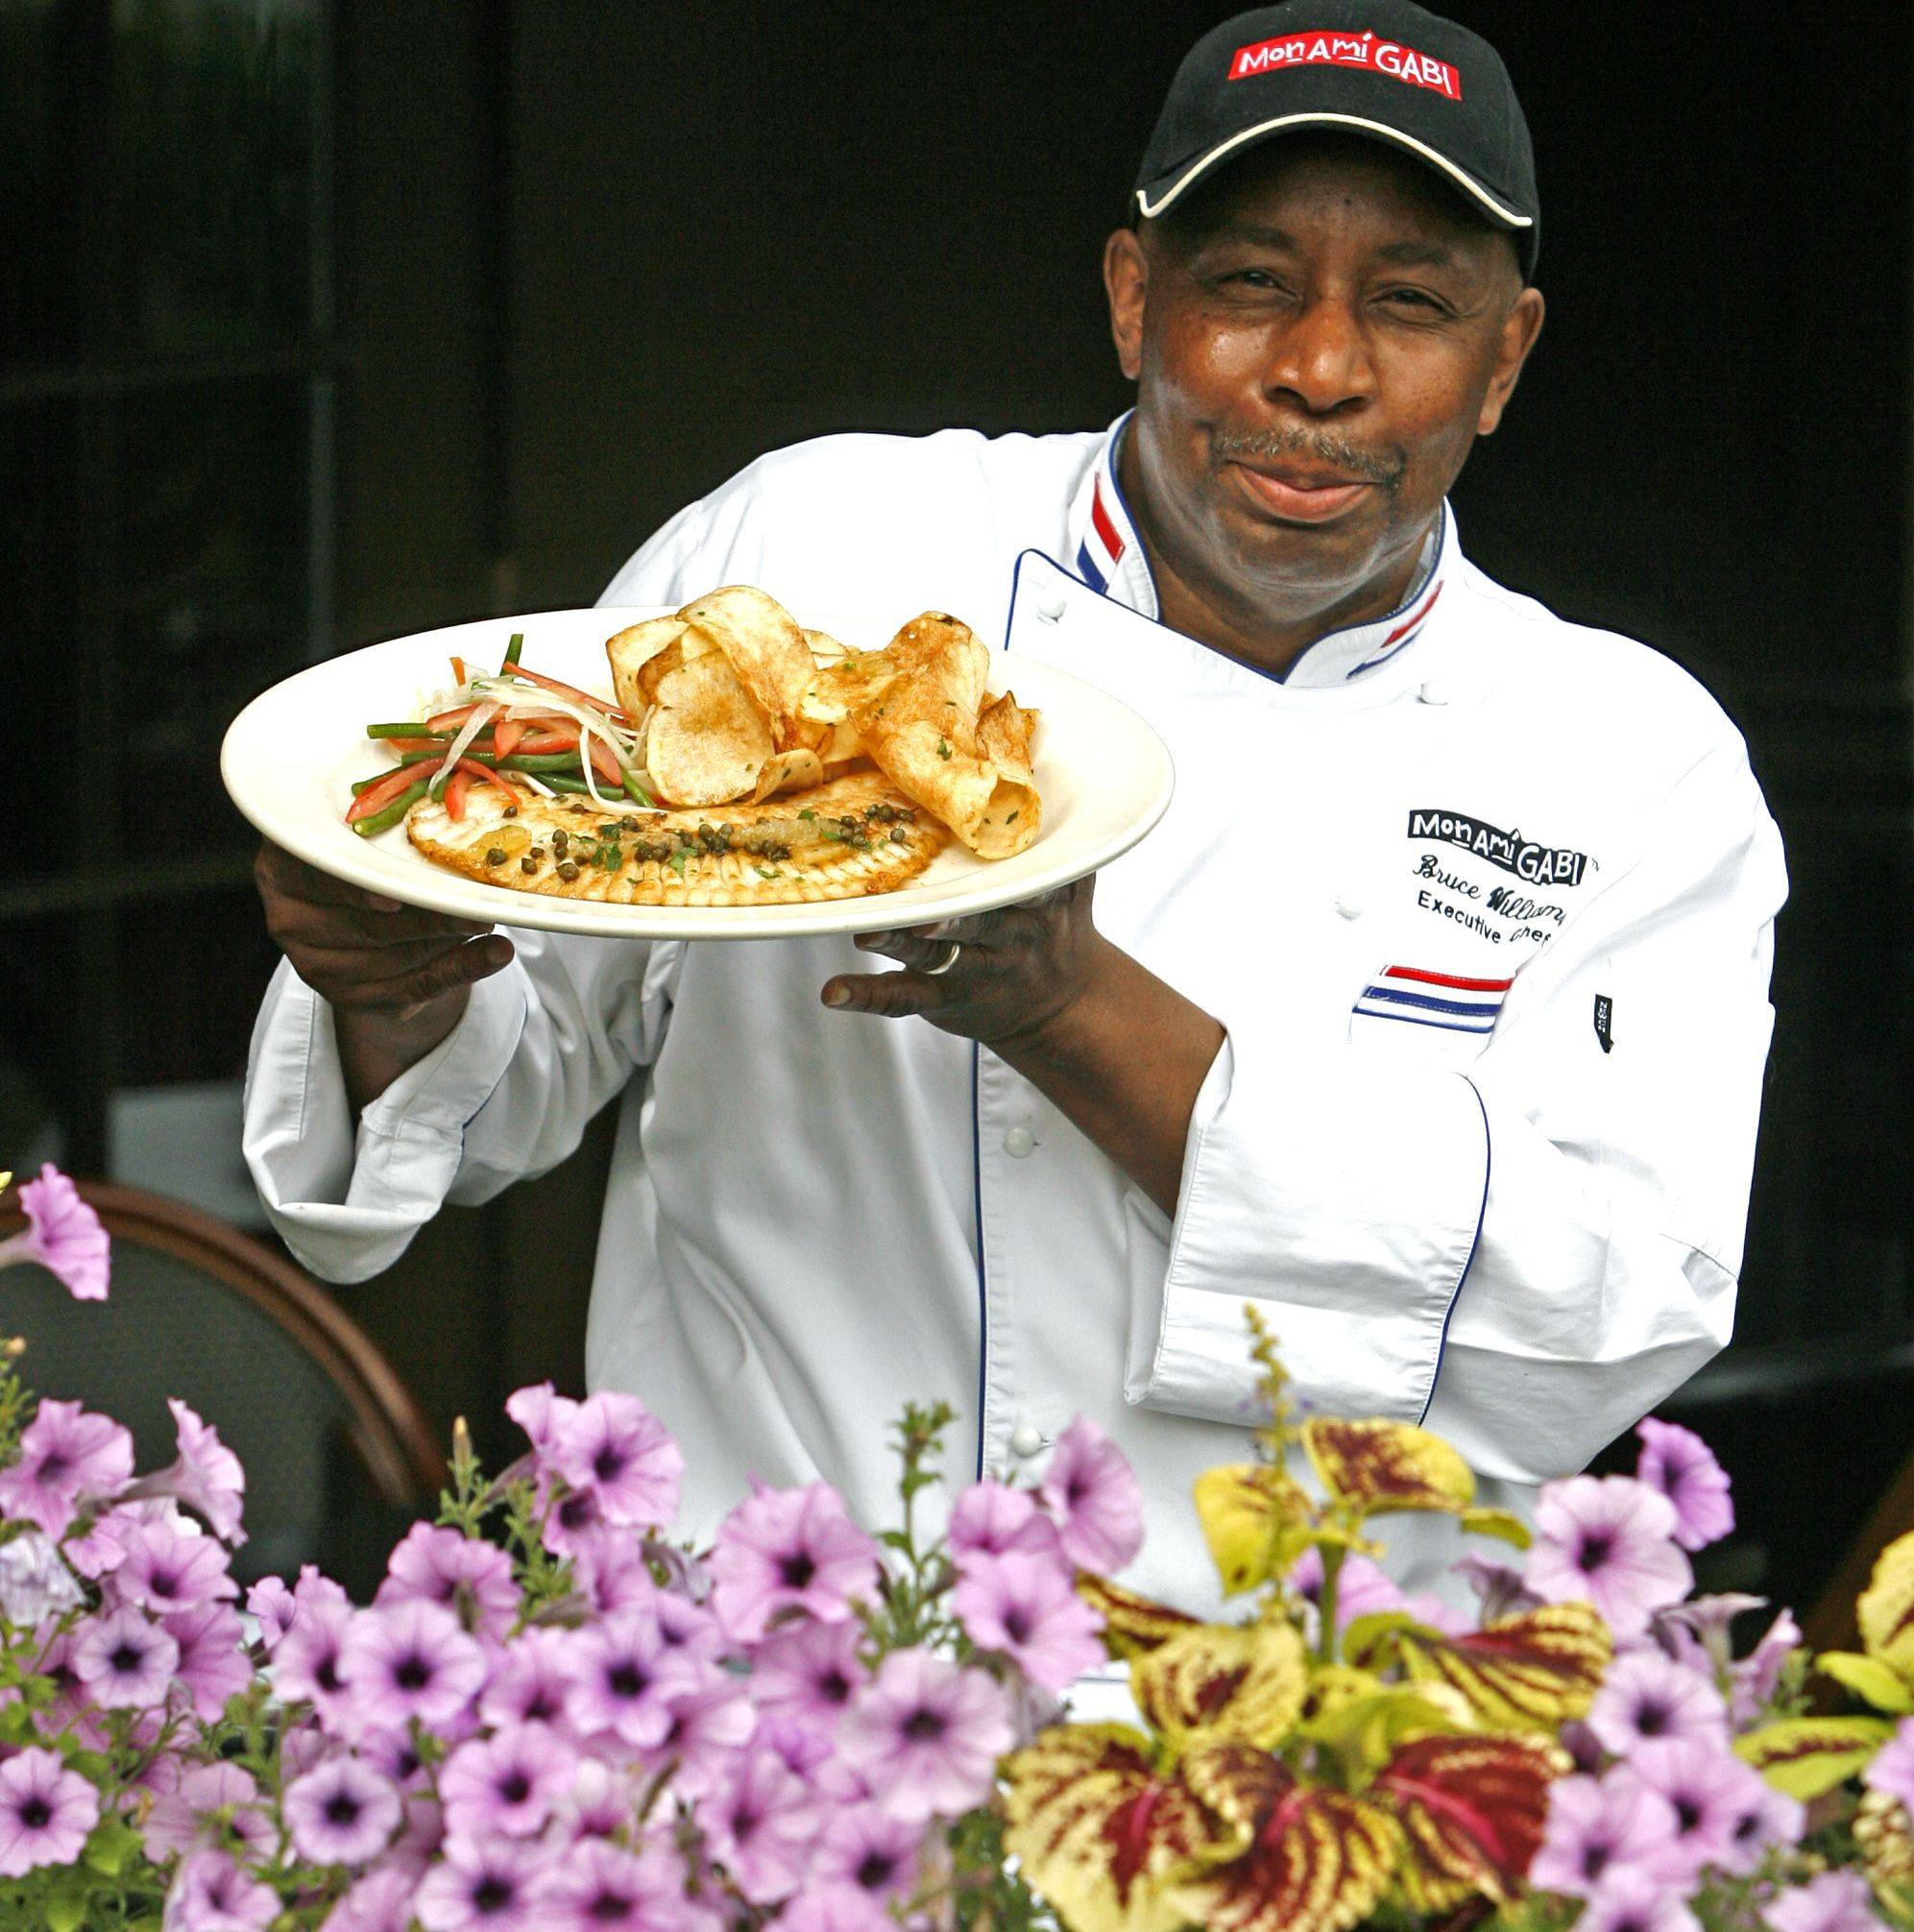 Chef Bruce Williams has been in the restaurant business for 25 years, most recently serving French food at Mon Ami in Oak Brook where he makes a popular dish of Skate Wing with garlic potato chips and summer salad.